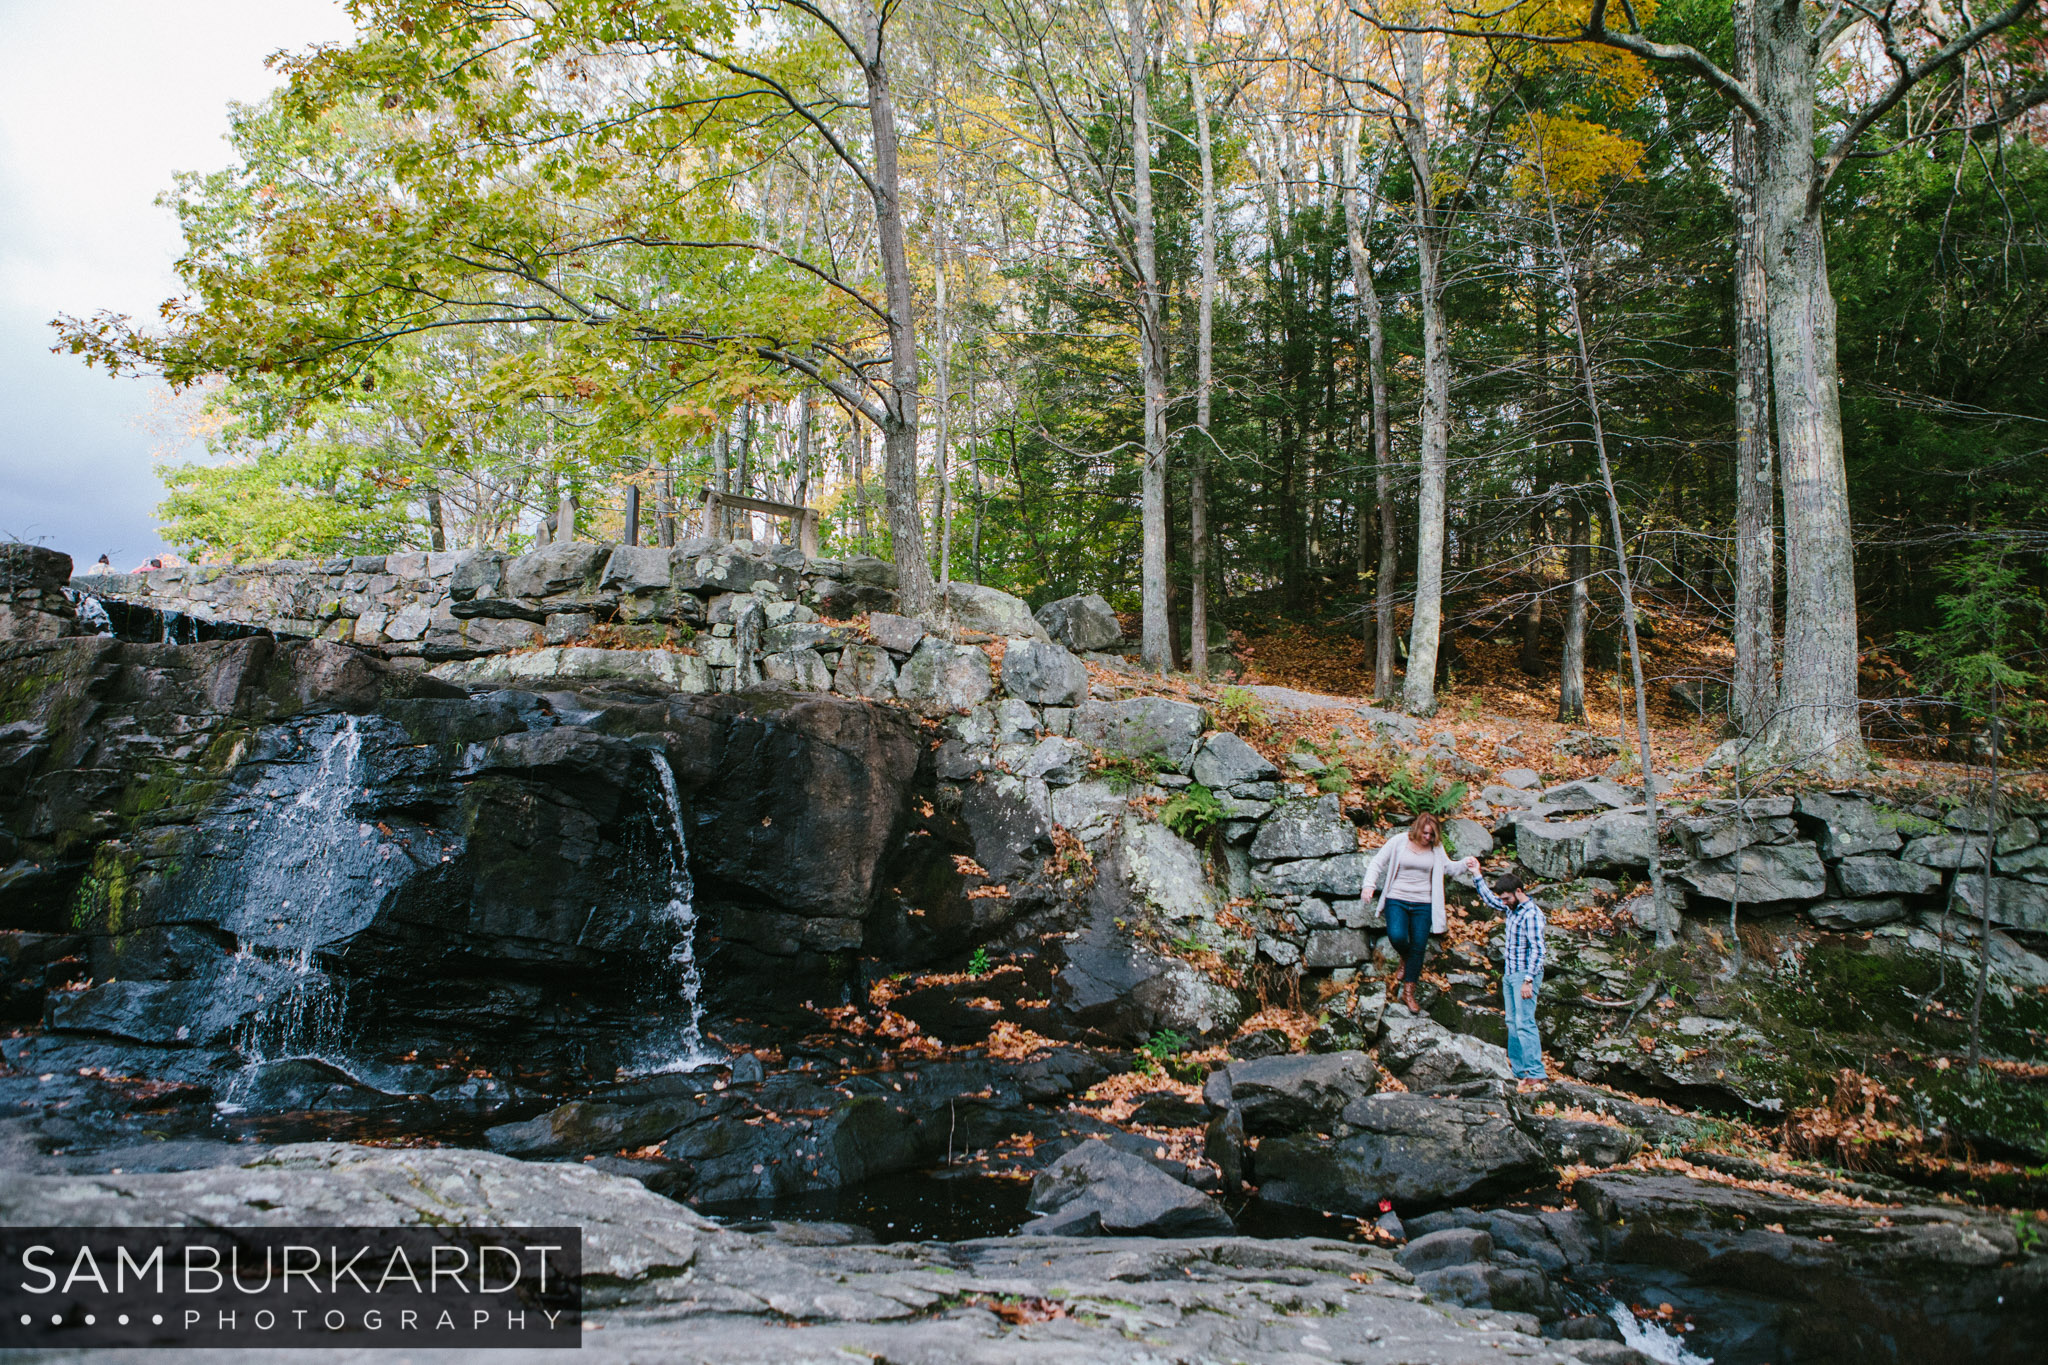 samburkardt-fall-engagement-connecticut-foliage-southford-falls-state-park_0008.jpg